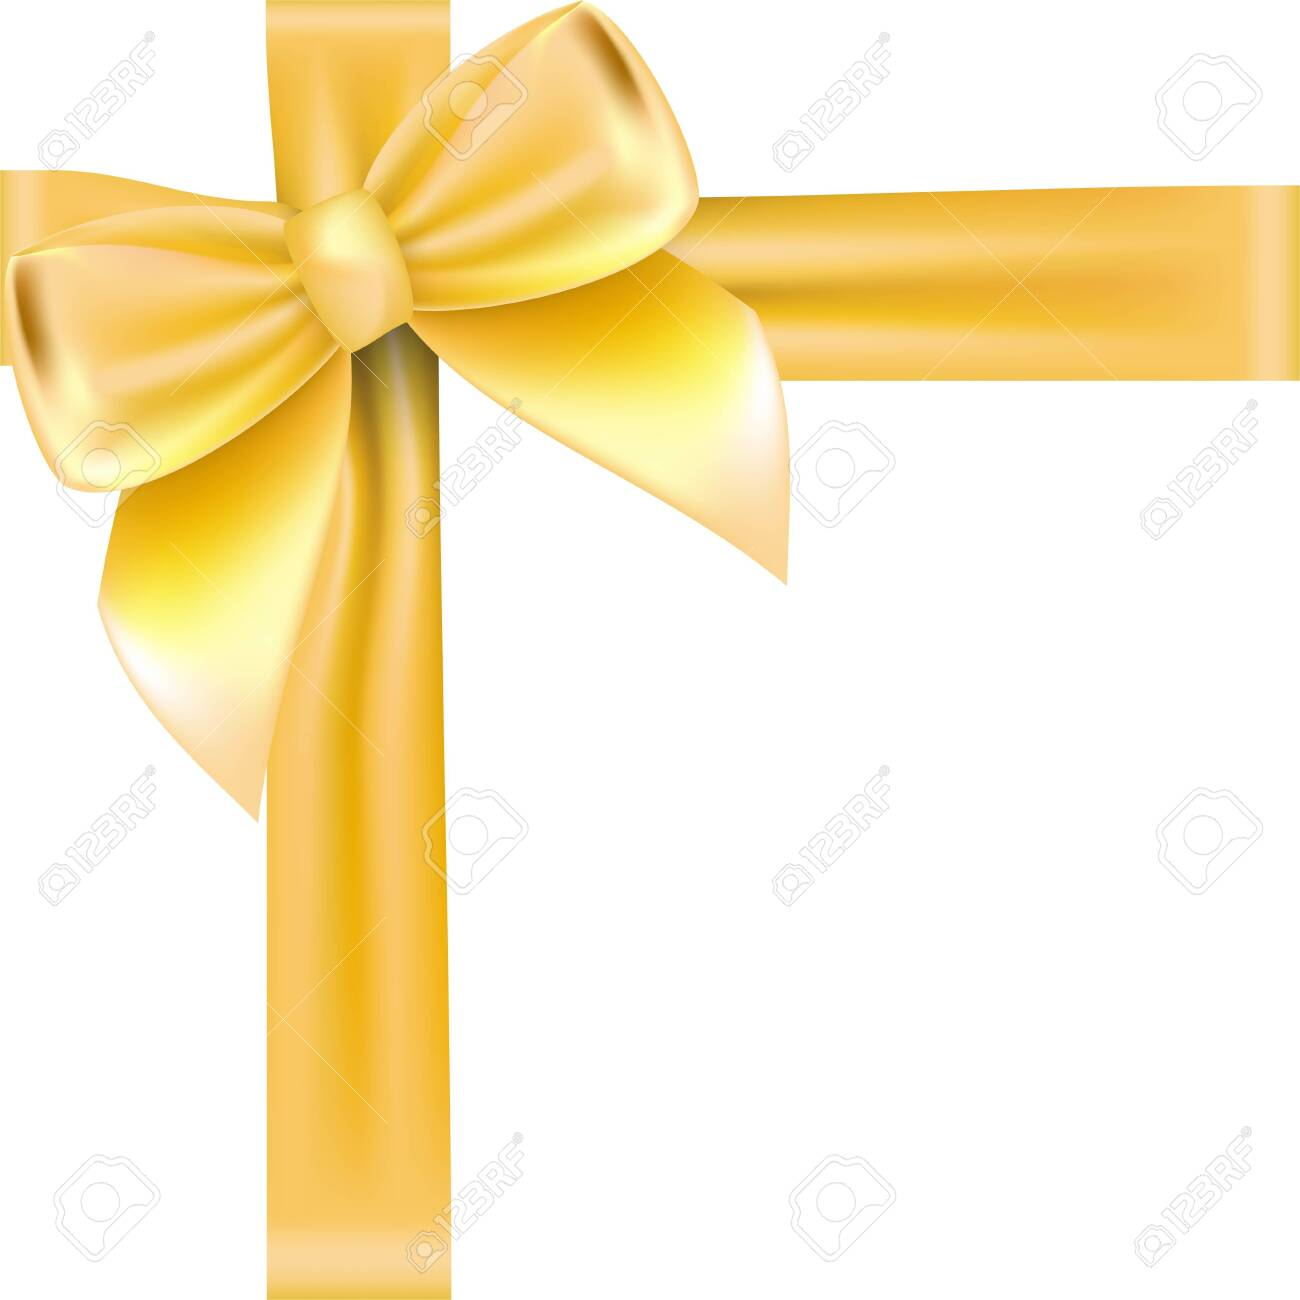 Shiny golden satin ribbon . Vector isolate gold bow for design greeting and discount card. isolated on white background - 142217799